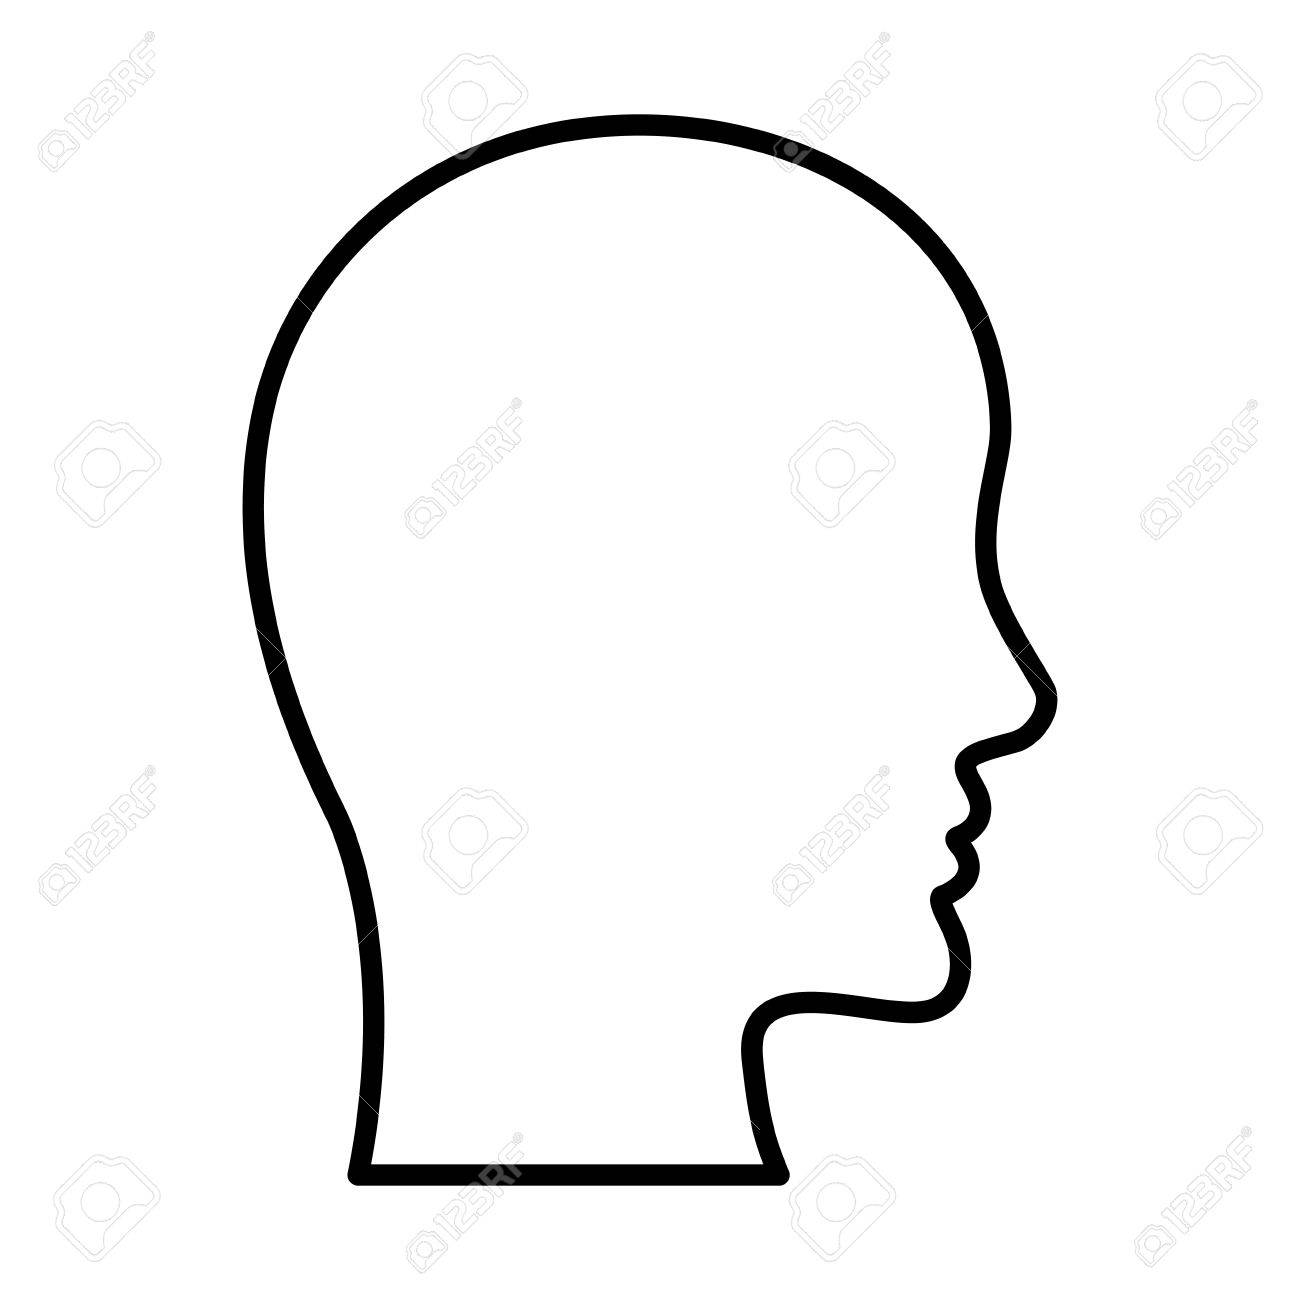 Human Head Silhouette Design Vector Illustration White Background Royalty Free Cliparts Vectors And Stock Illustration Image 67413610 Head silhouette free brushes licensed under creative commons, open source, and more! human head silhouette design vector illustration white background